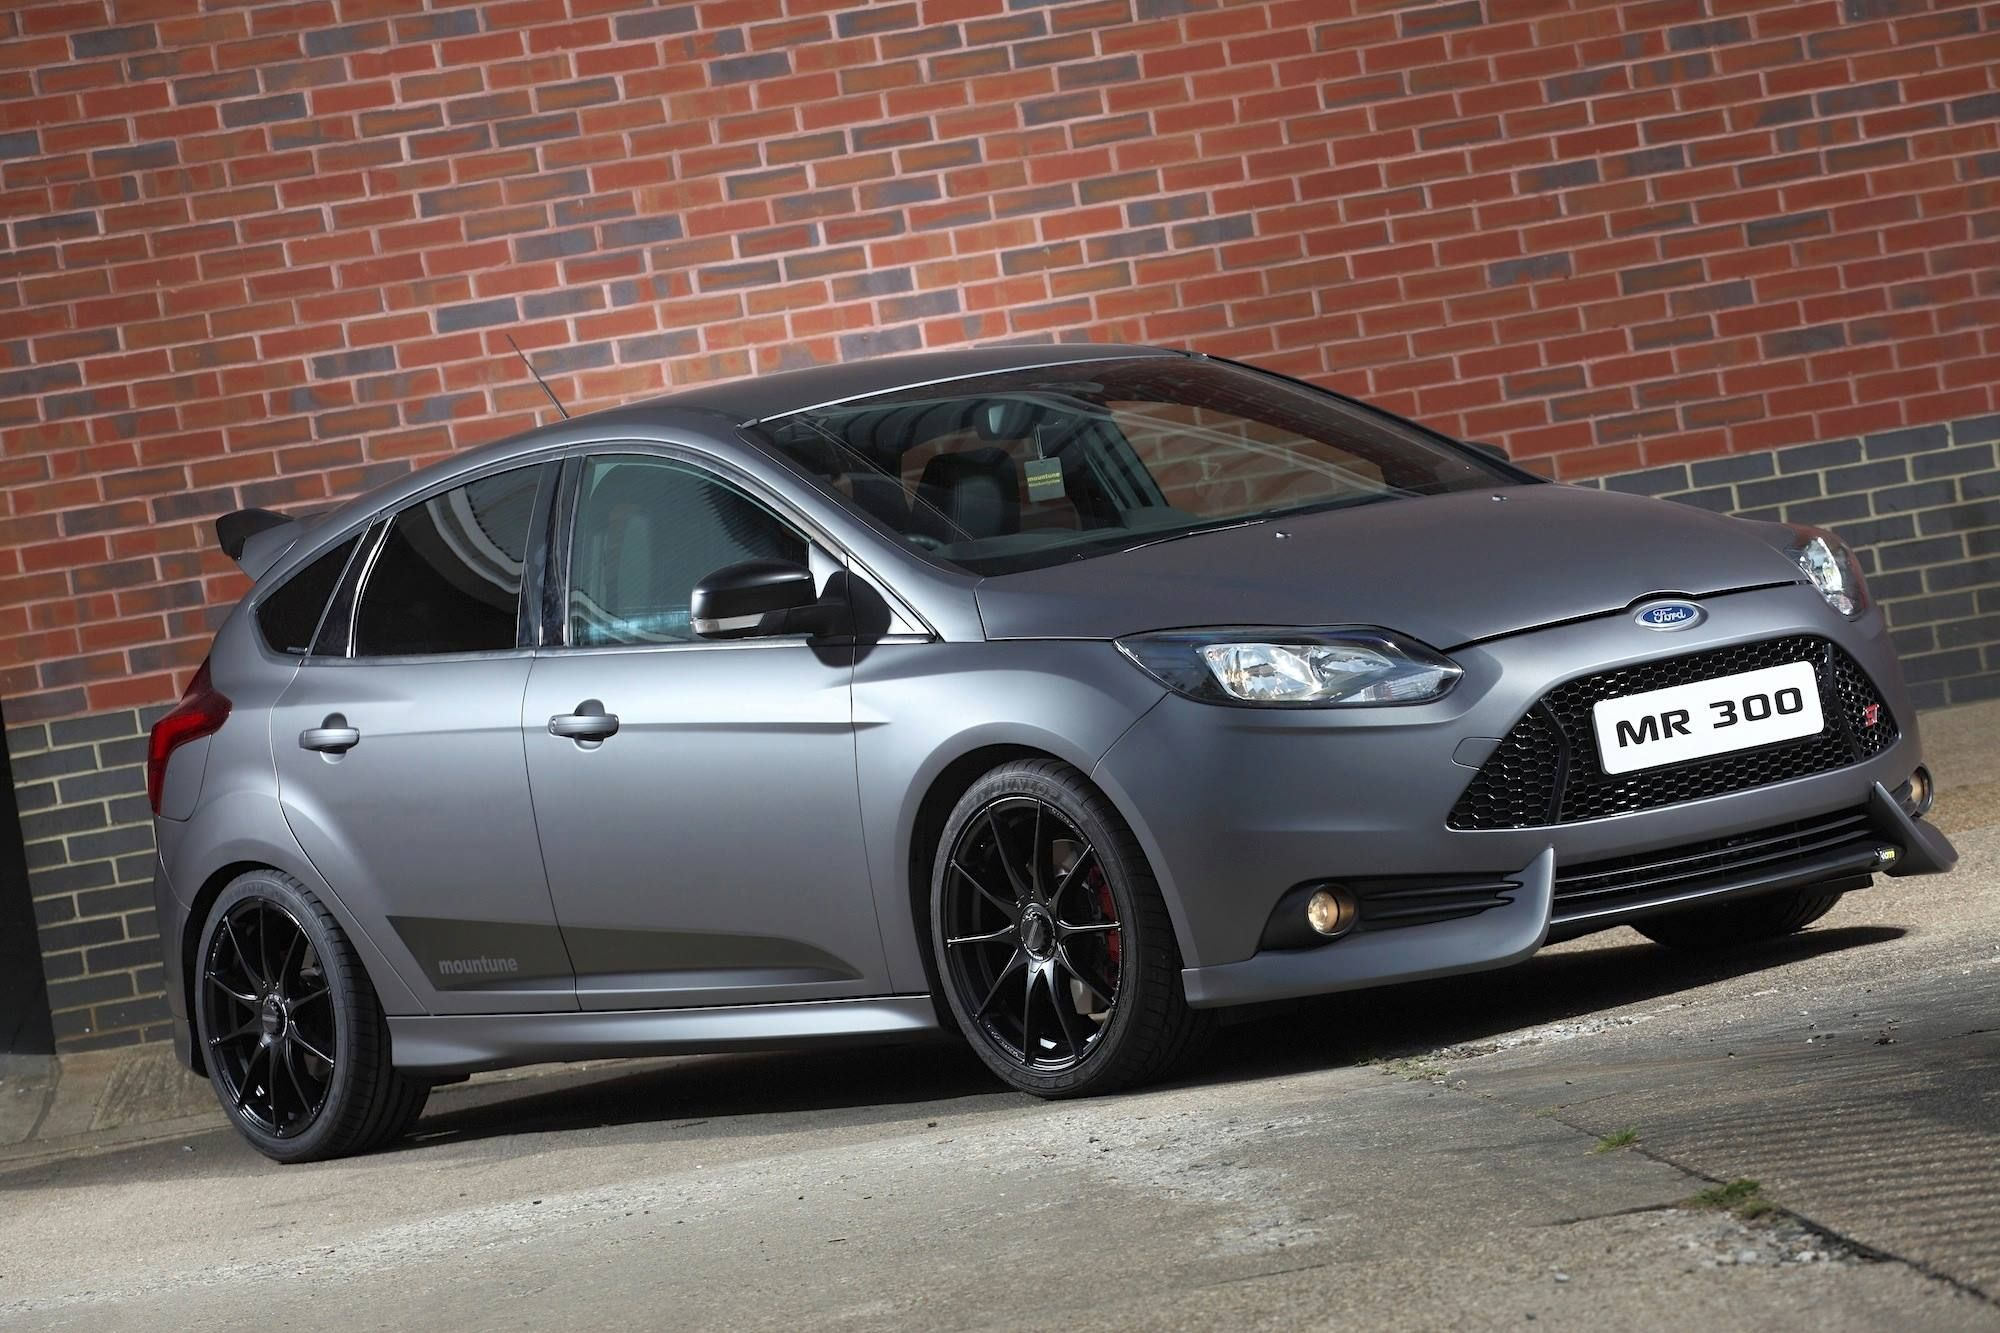 Matte Black Ford Focus St Mr300 By Mountune Ford Focus Ford Focus St Ford Focus Rs